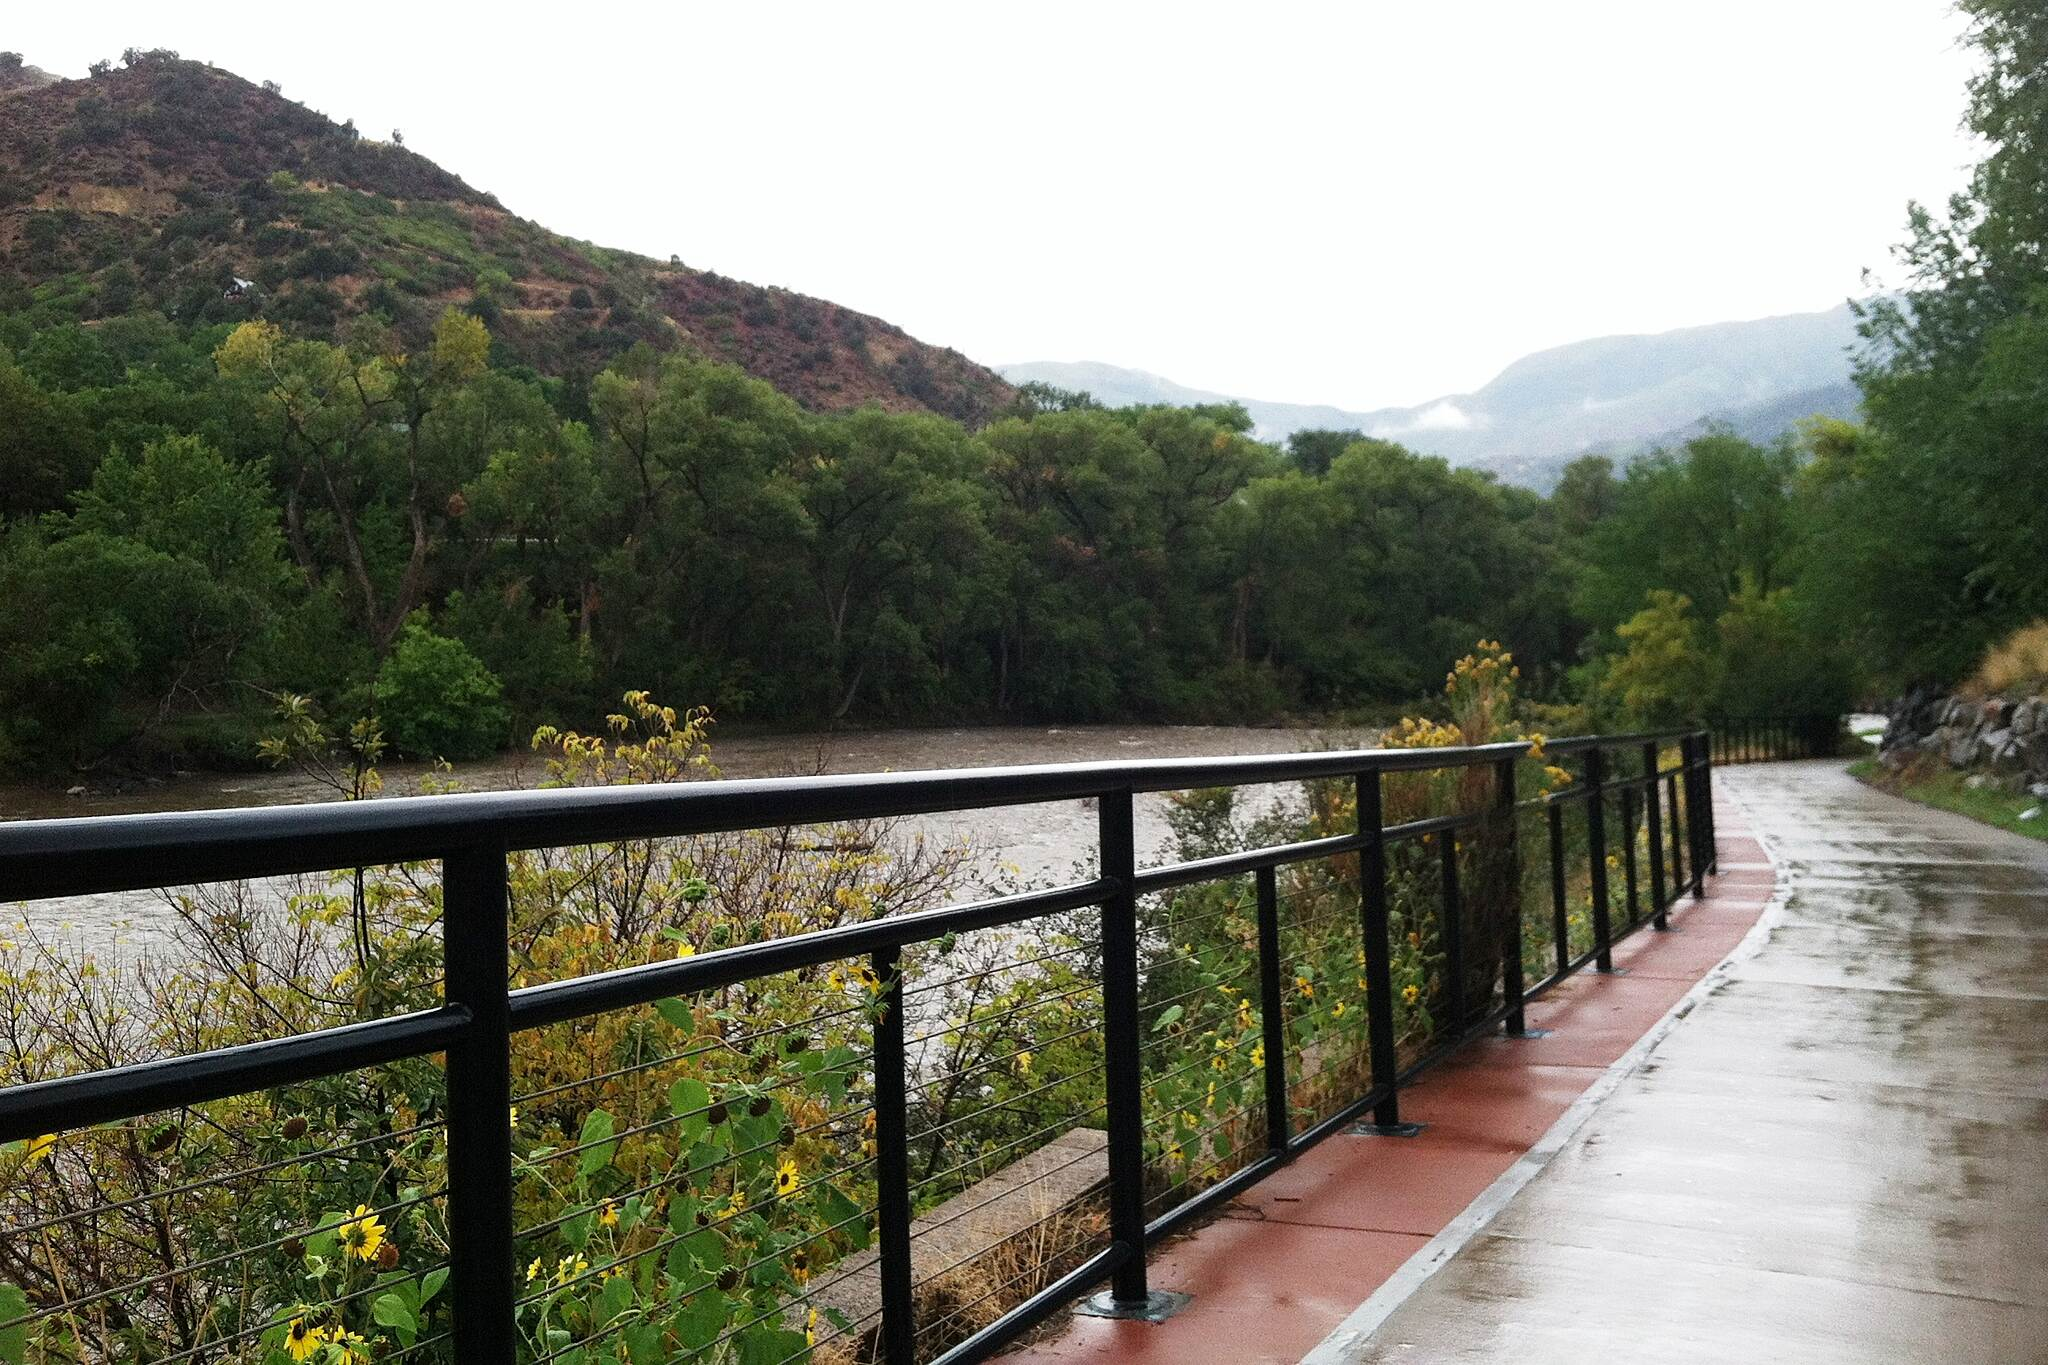 Glenwood Canyon Recreation Trail Riverside Despite the rain, running alongside the river was still awesome.